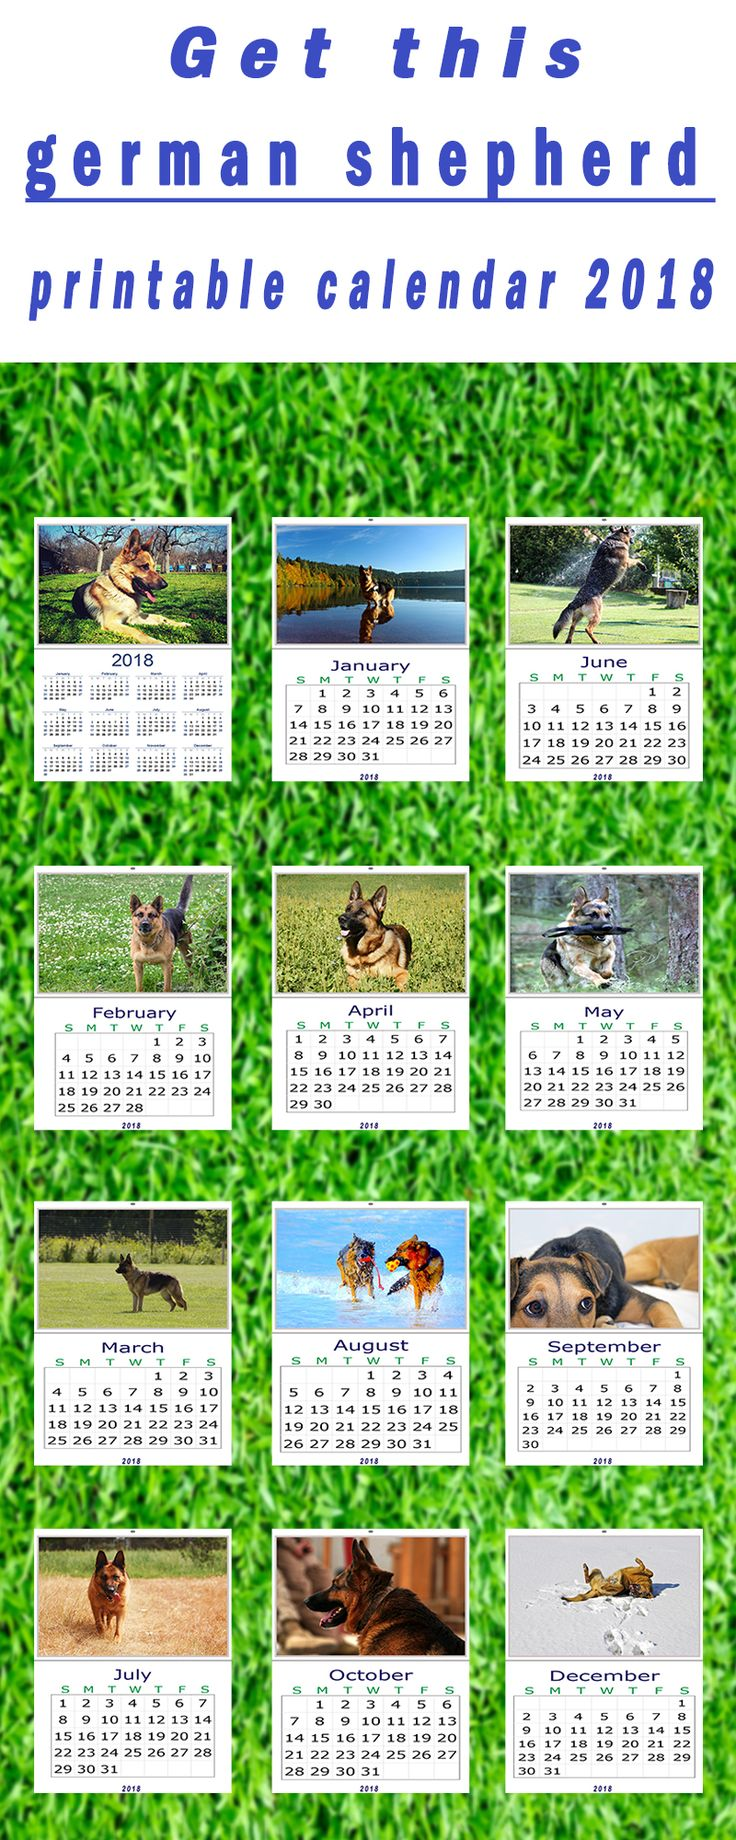 Fabulous If you are a germanshepherds lover then you must take a look at this german